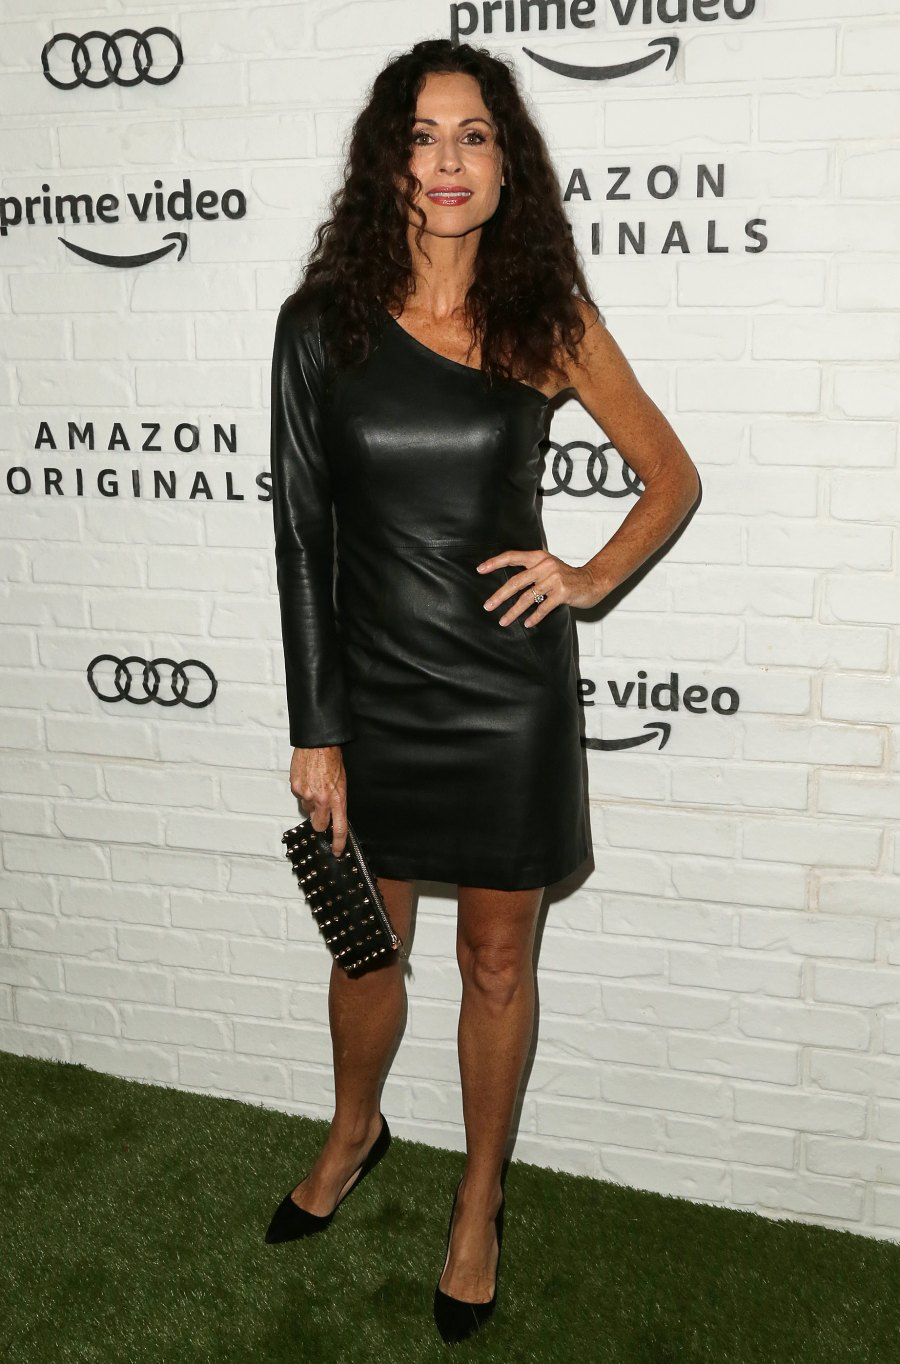 Emmys After Parties - Minnie Driver